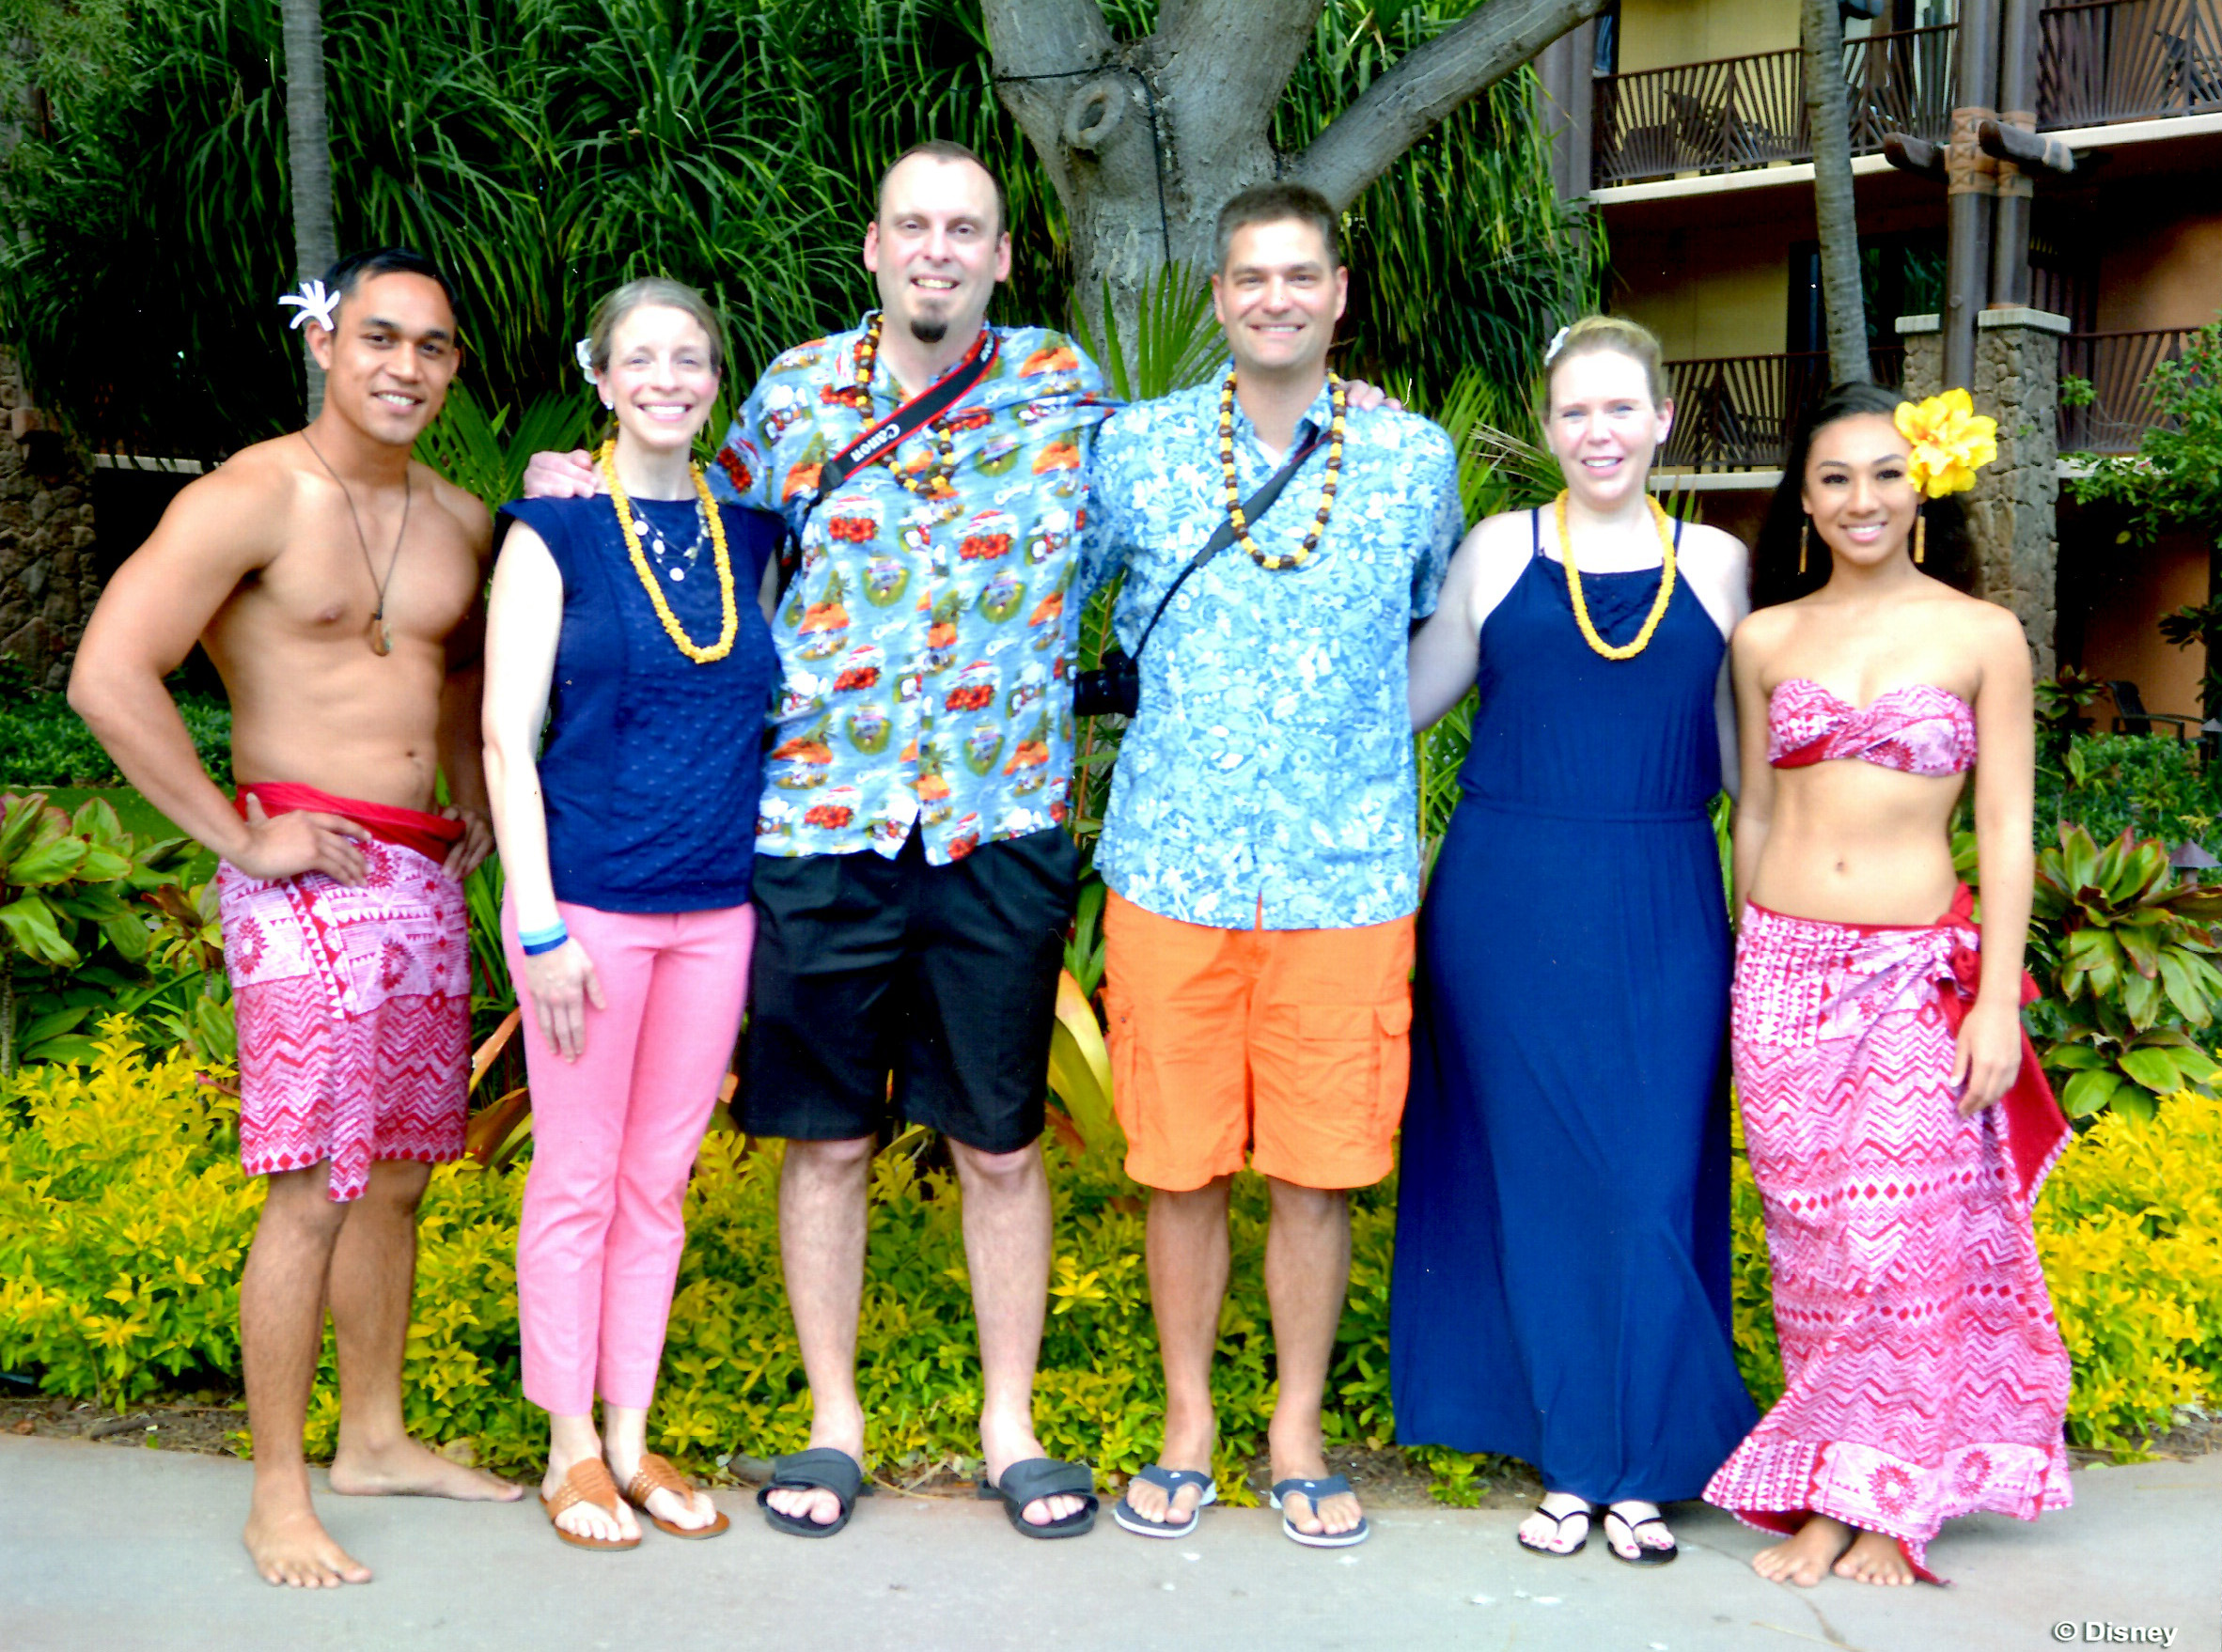 Our VIP group ready to party Hawaiian style!